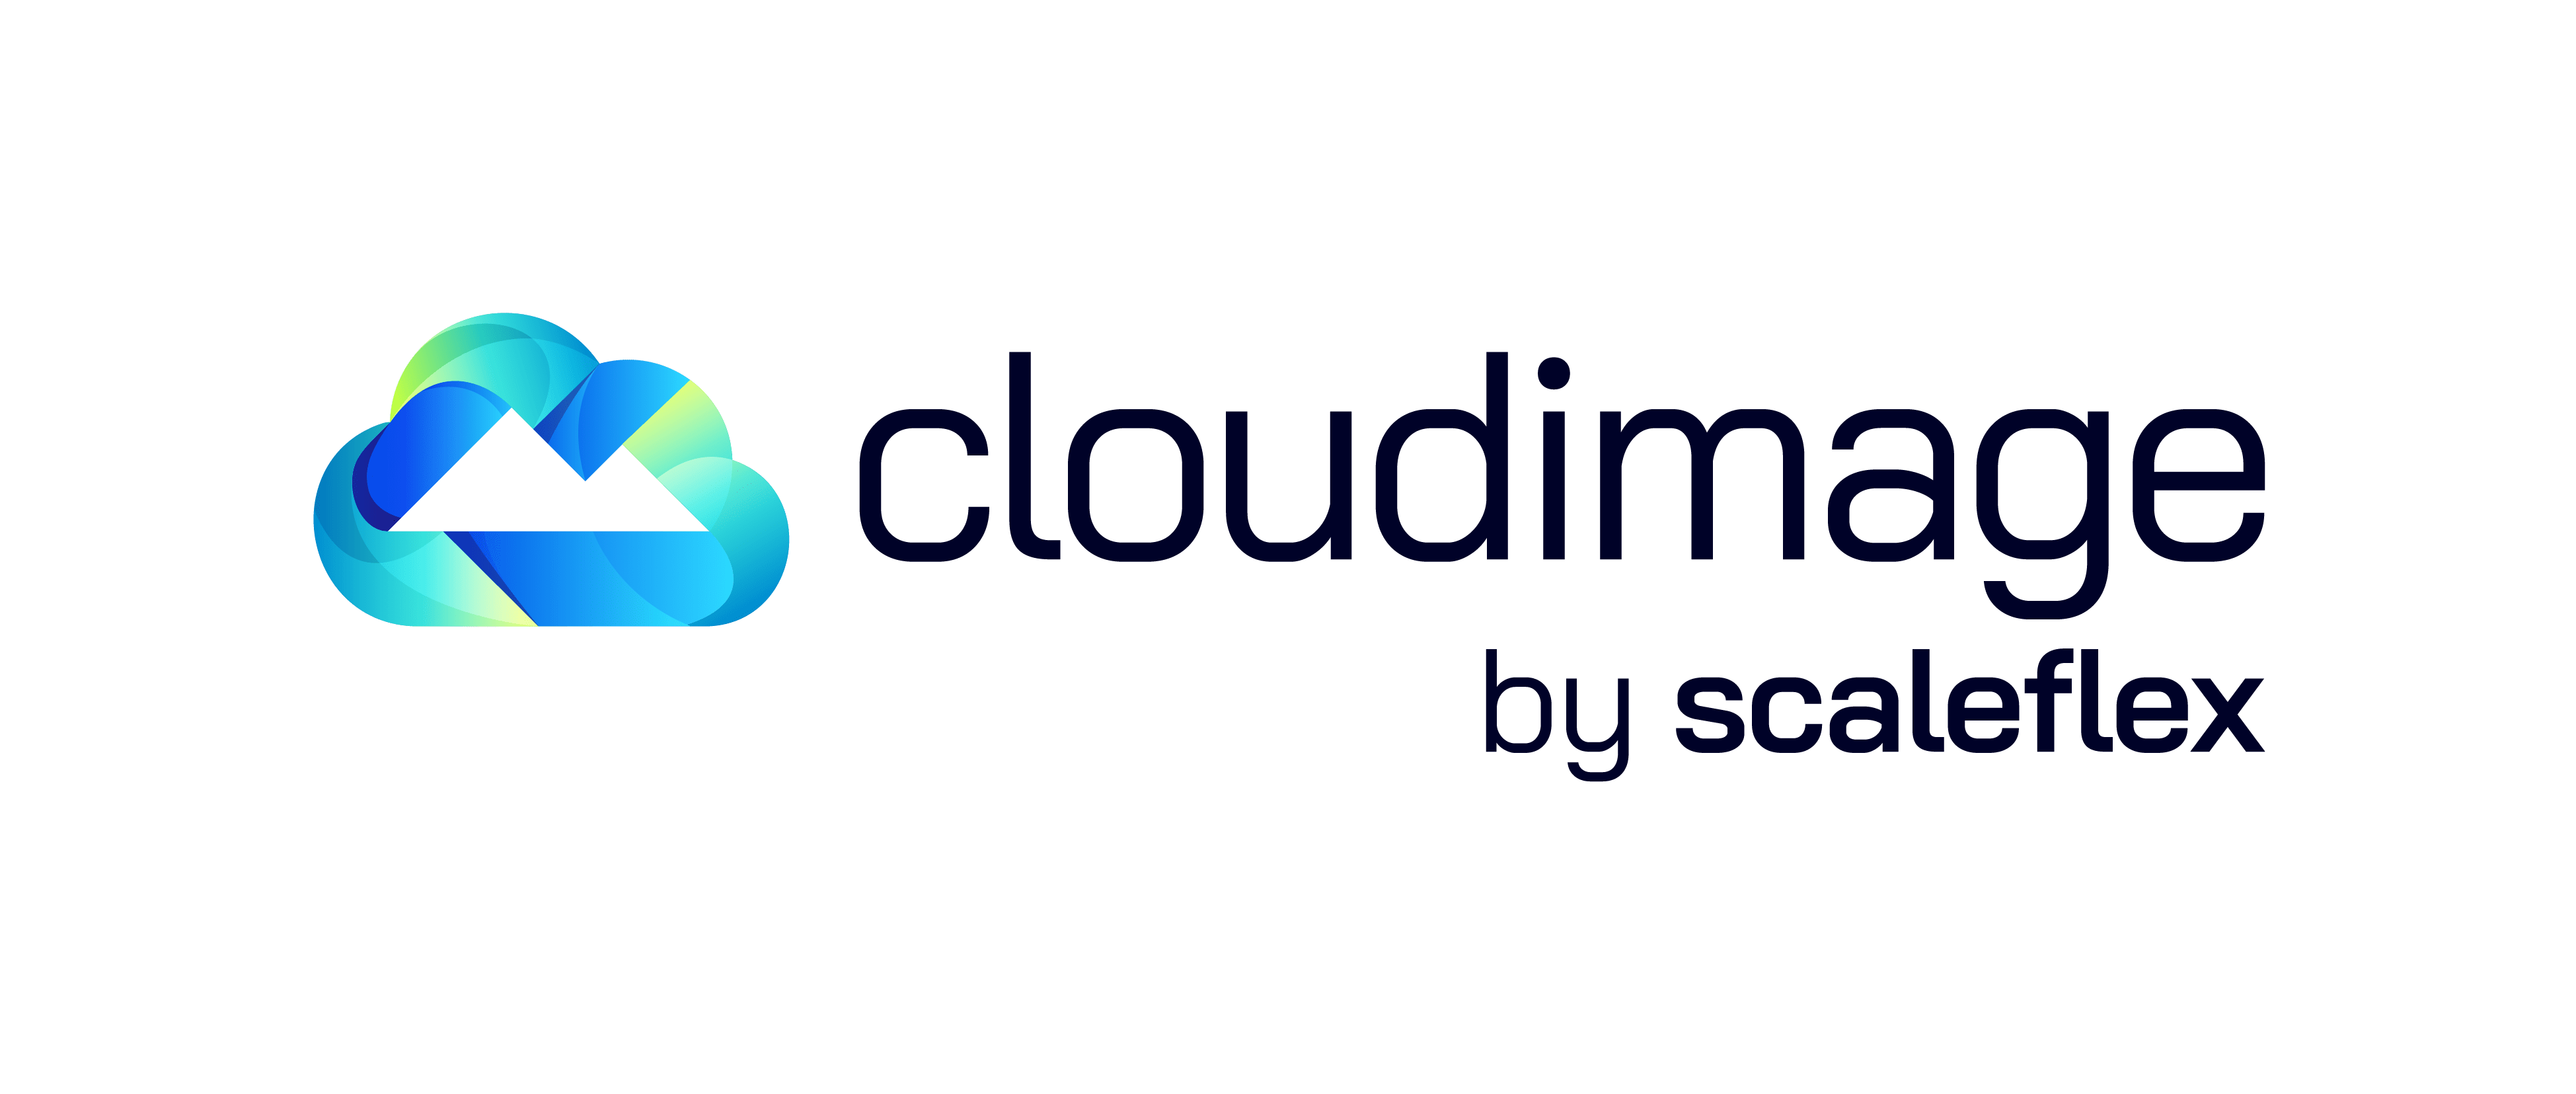 Have you ever left a website or app because it was too slow to load? Have you ever struggled with optimizing your website's or app's images to serve multiple form factors?<​cloudimage.io/> makes image resizing and rocket-fast delivery super easy! Our Cloud-based image management solution allows you to generate multiple formats on-the-fly and reach your end users via global CDNs. <​cloudimage.io /> is the easiest Responsive-Images-as-A-Service solution! No more wasted time with image management for your developers, no more waiting for your users, more revenue for you, more happiness for your customers!